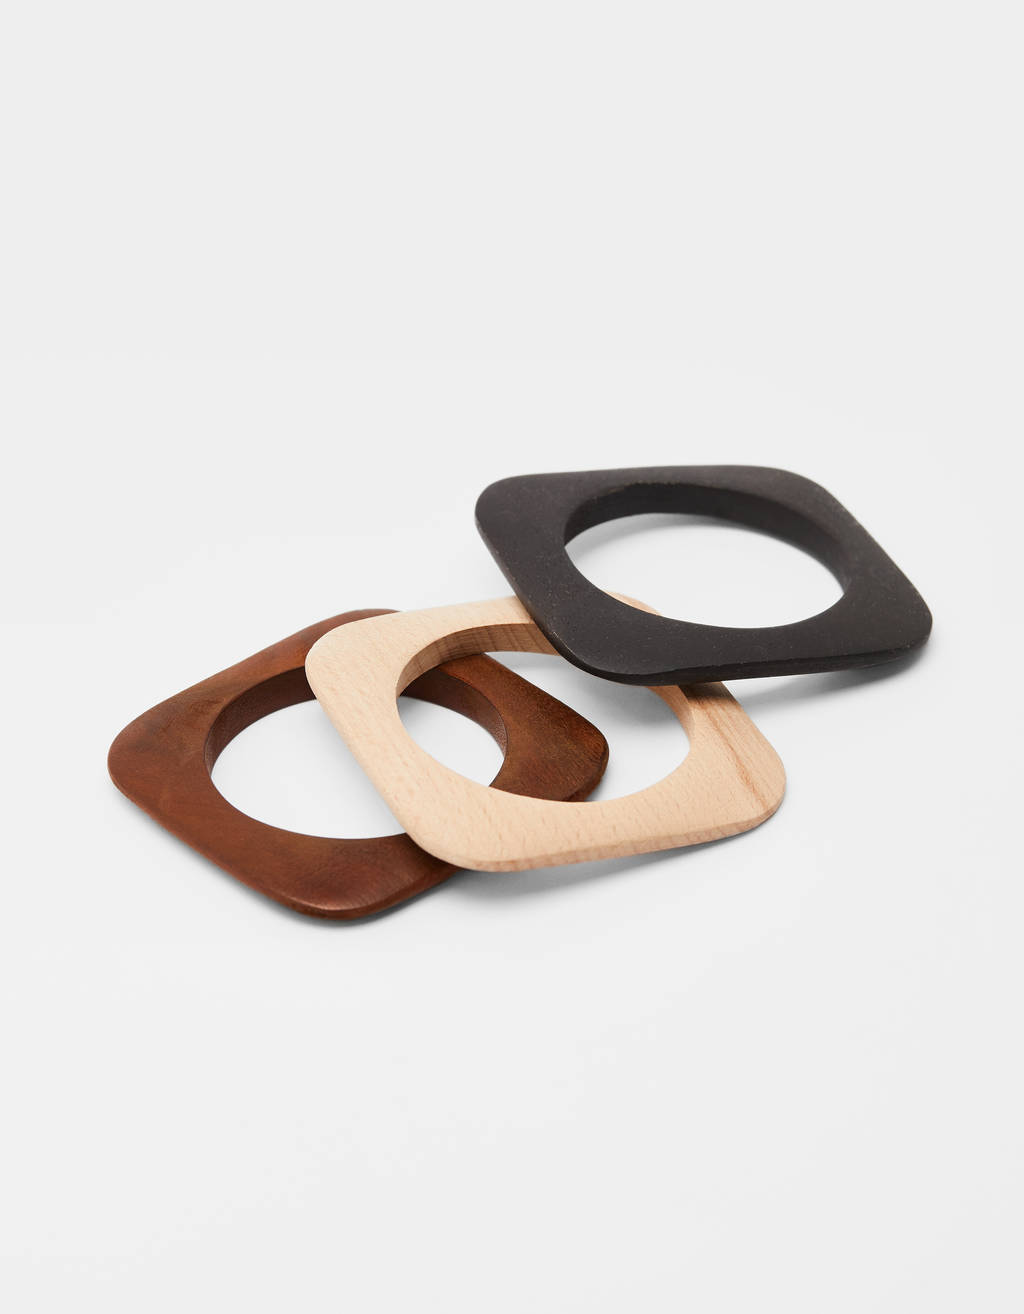 Set of wooden bracelets